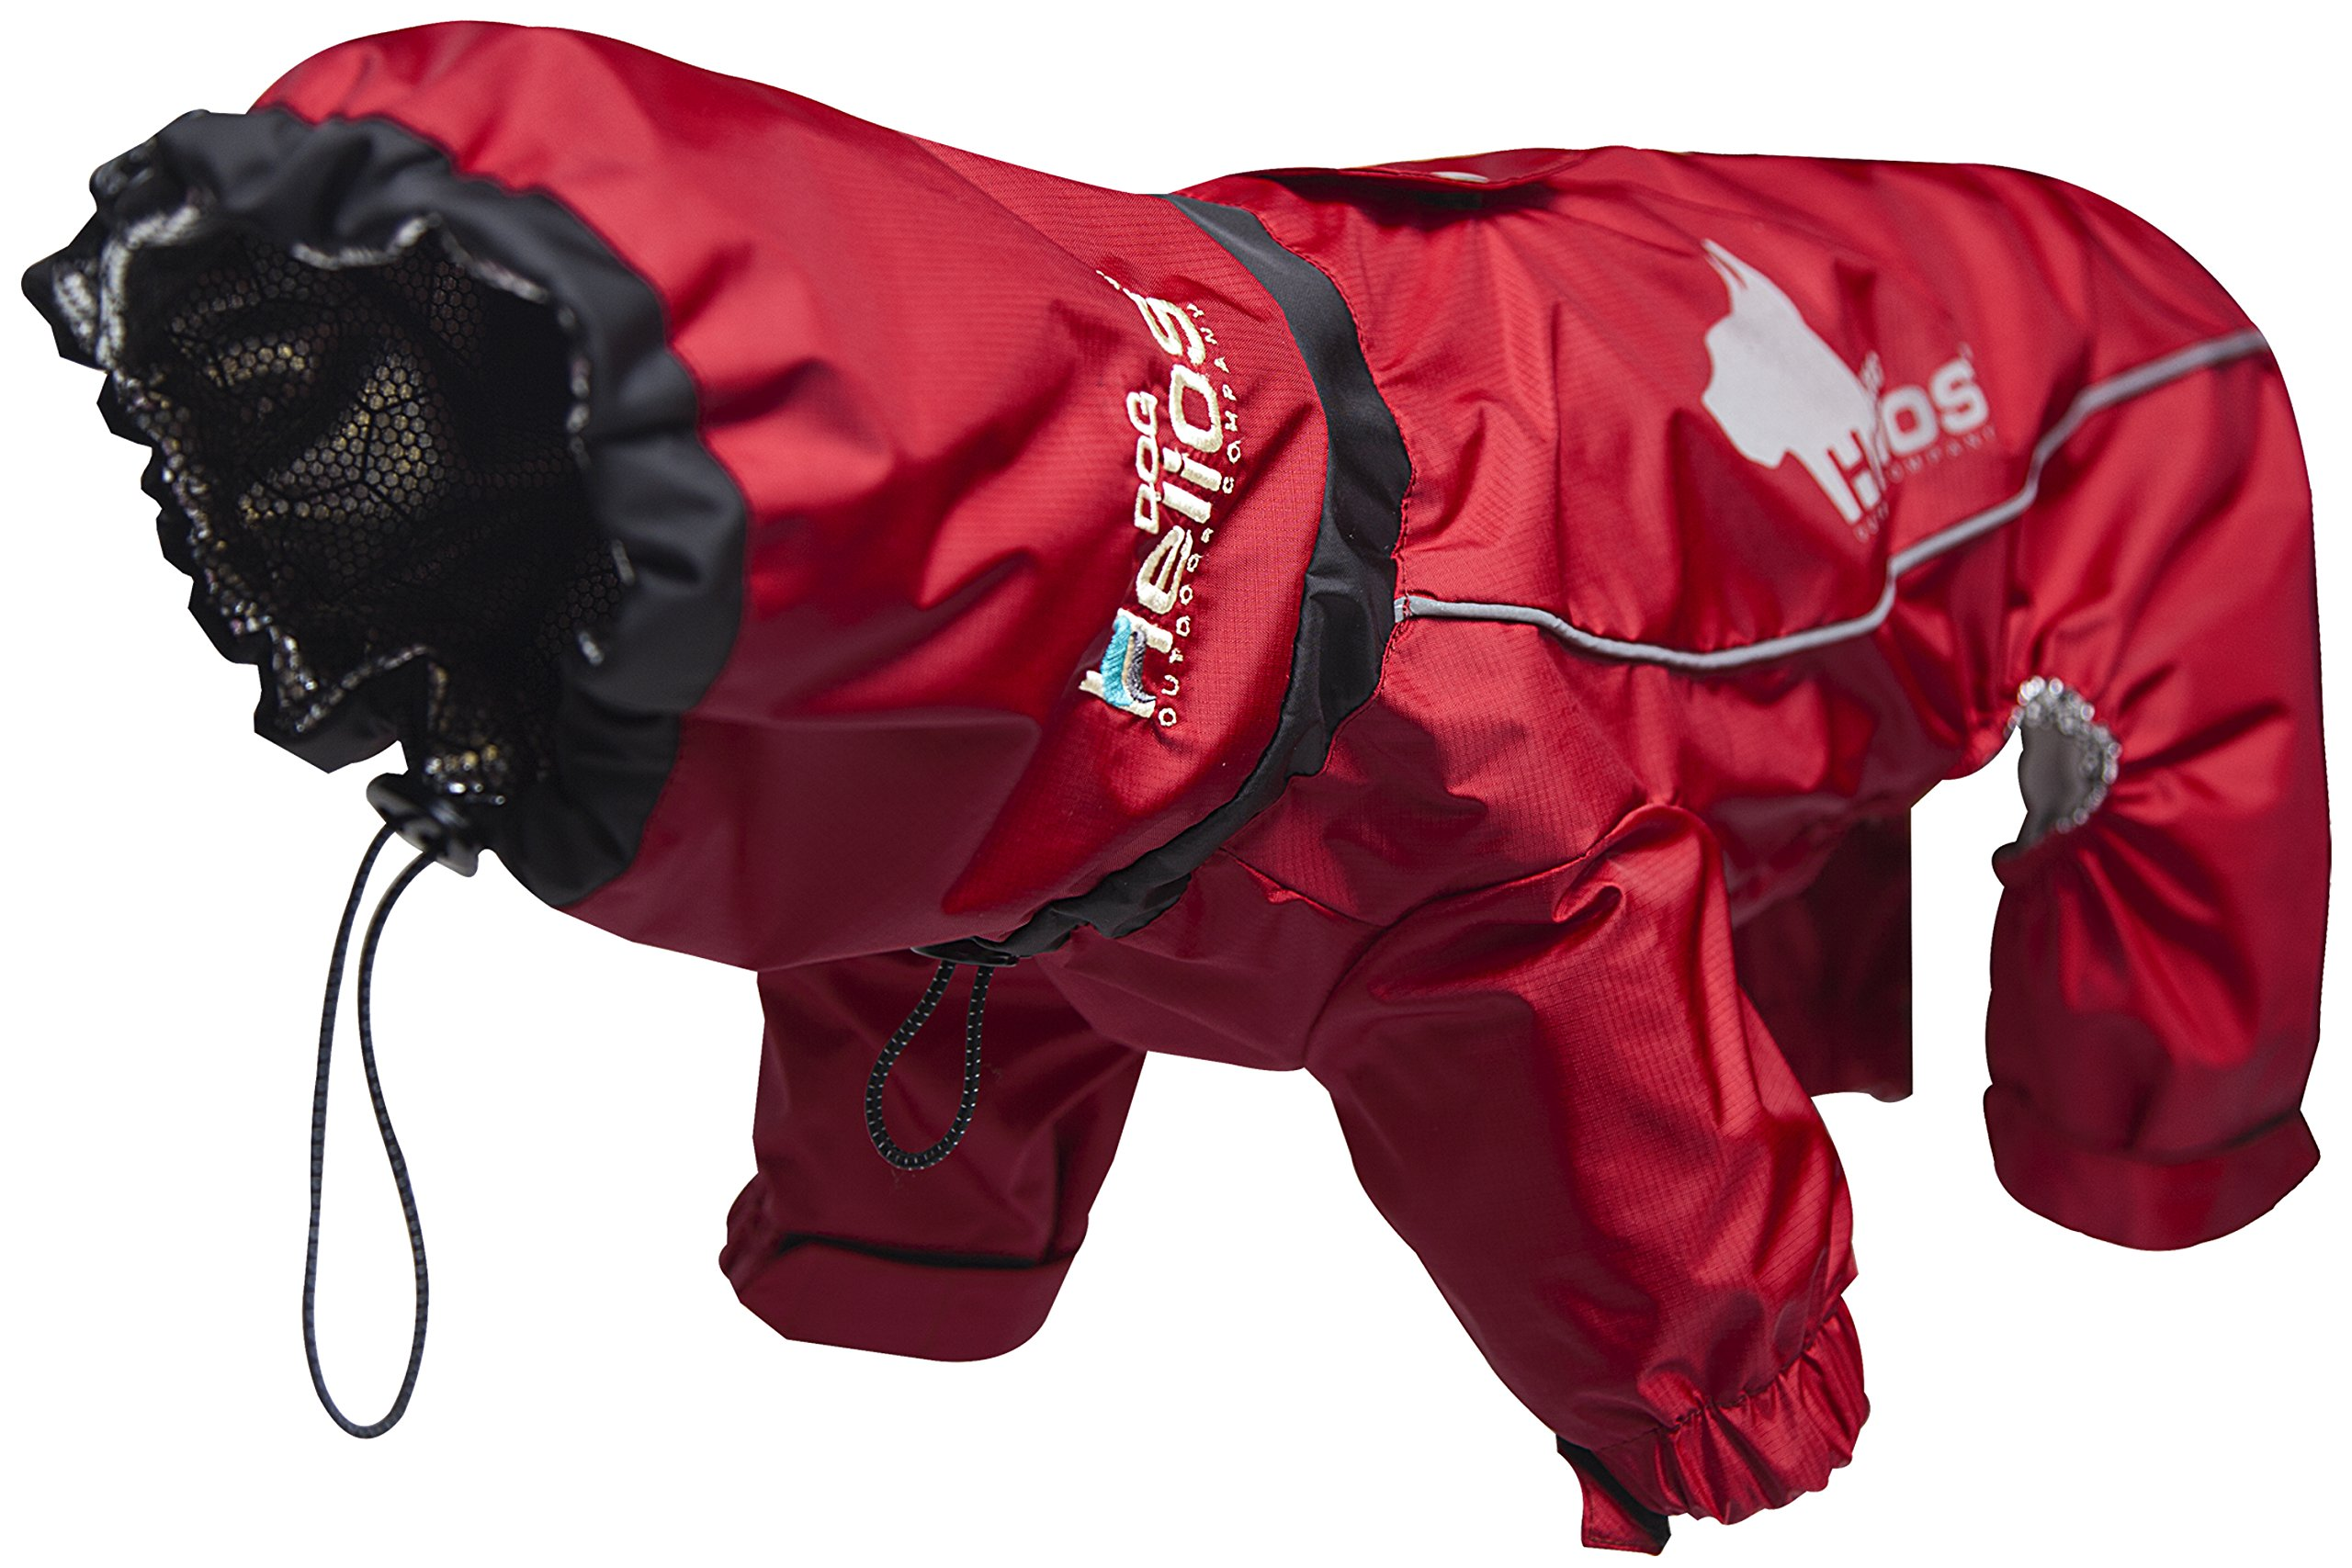 DOGHELIOS 'Weather-King' Windproof Waterproof and Insulated Adjustable Full Bodied Pet Dog Jacket Coat w/ Heat Retention Technology, X-Large, Red by DogHelios